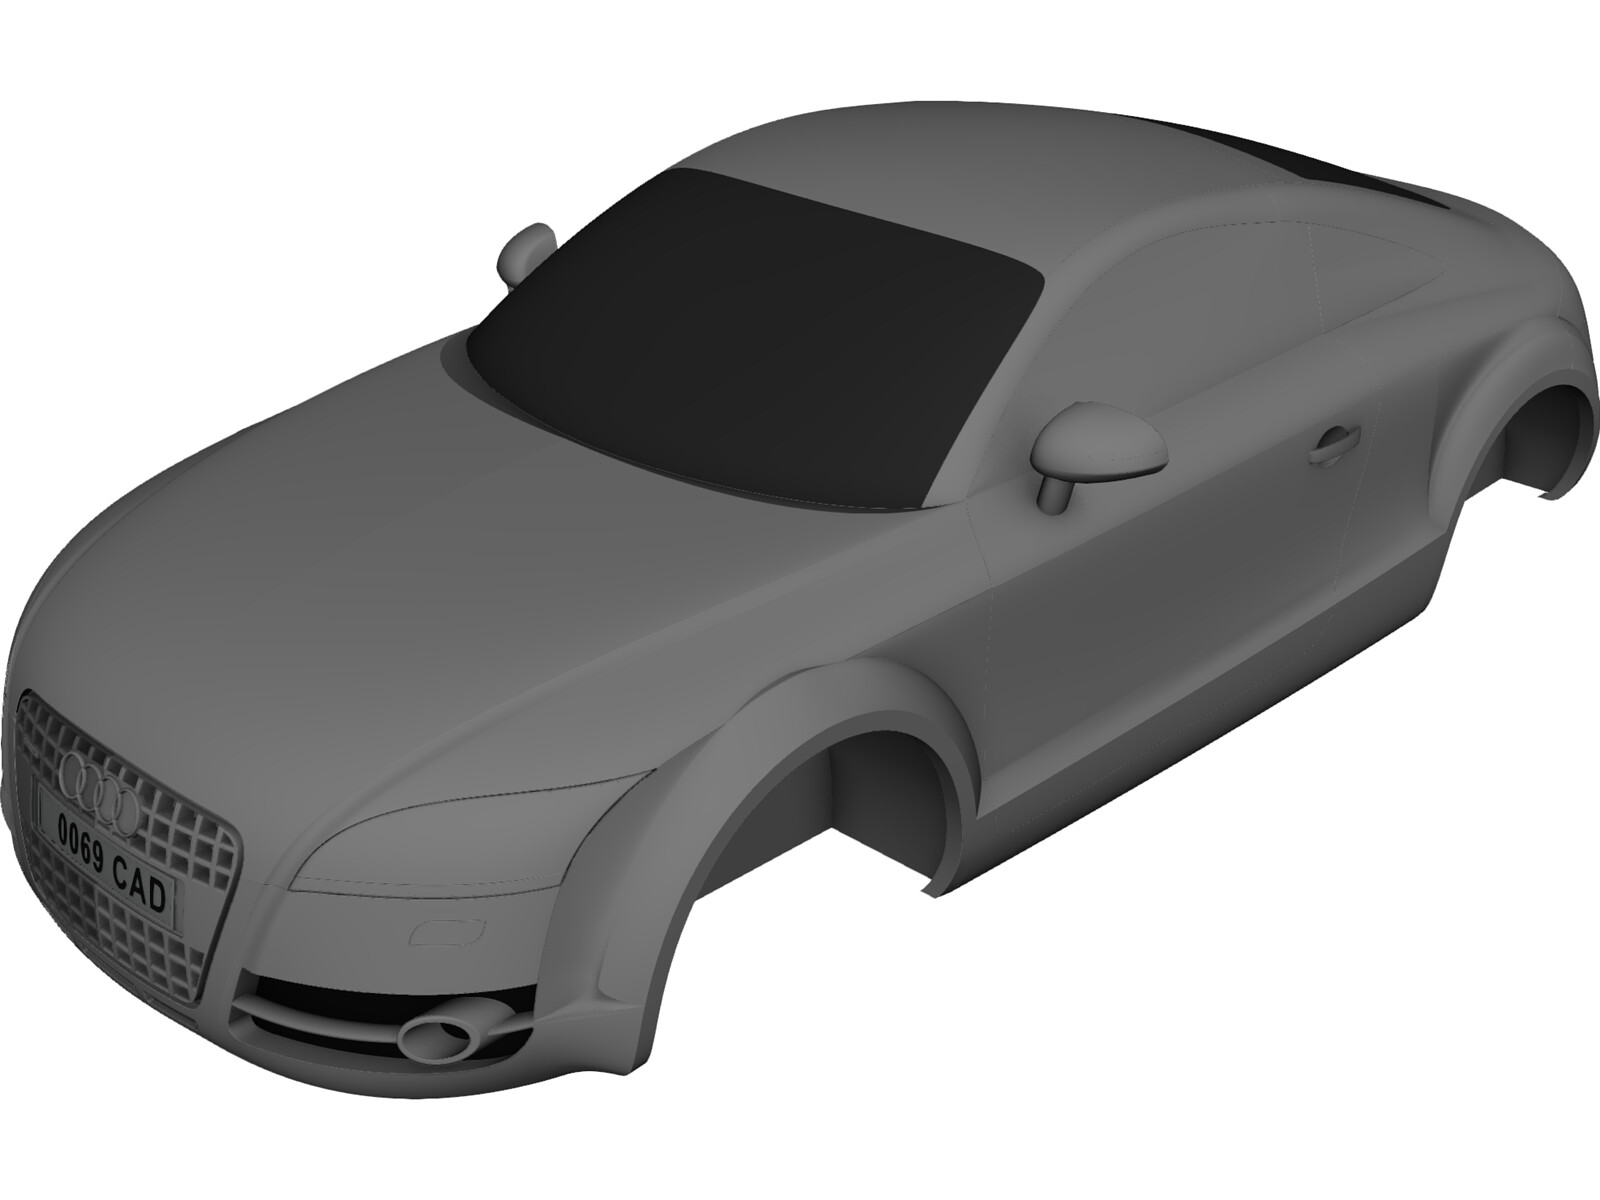 Audi Tt Body 3d Cad Model Download 3d Cad Browser